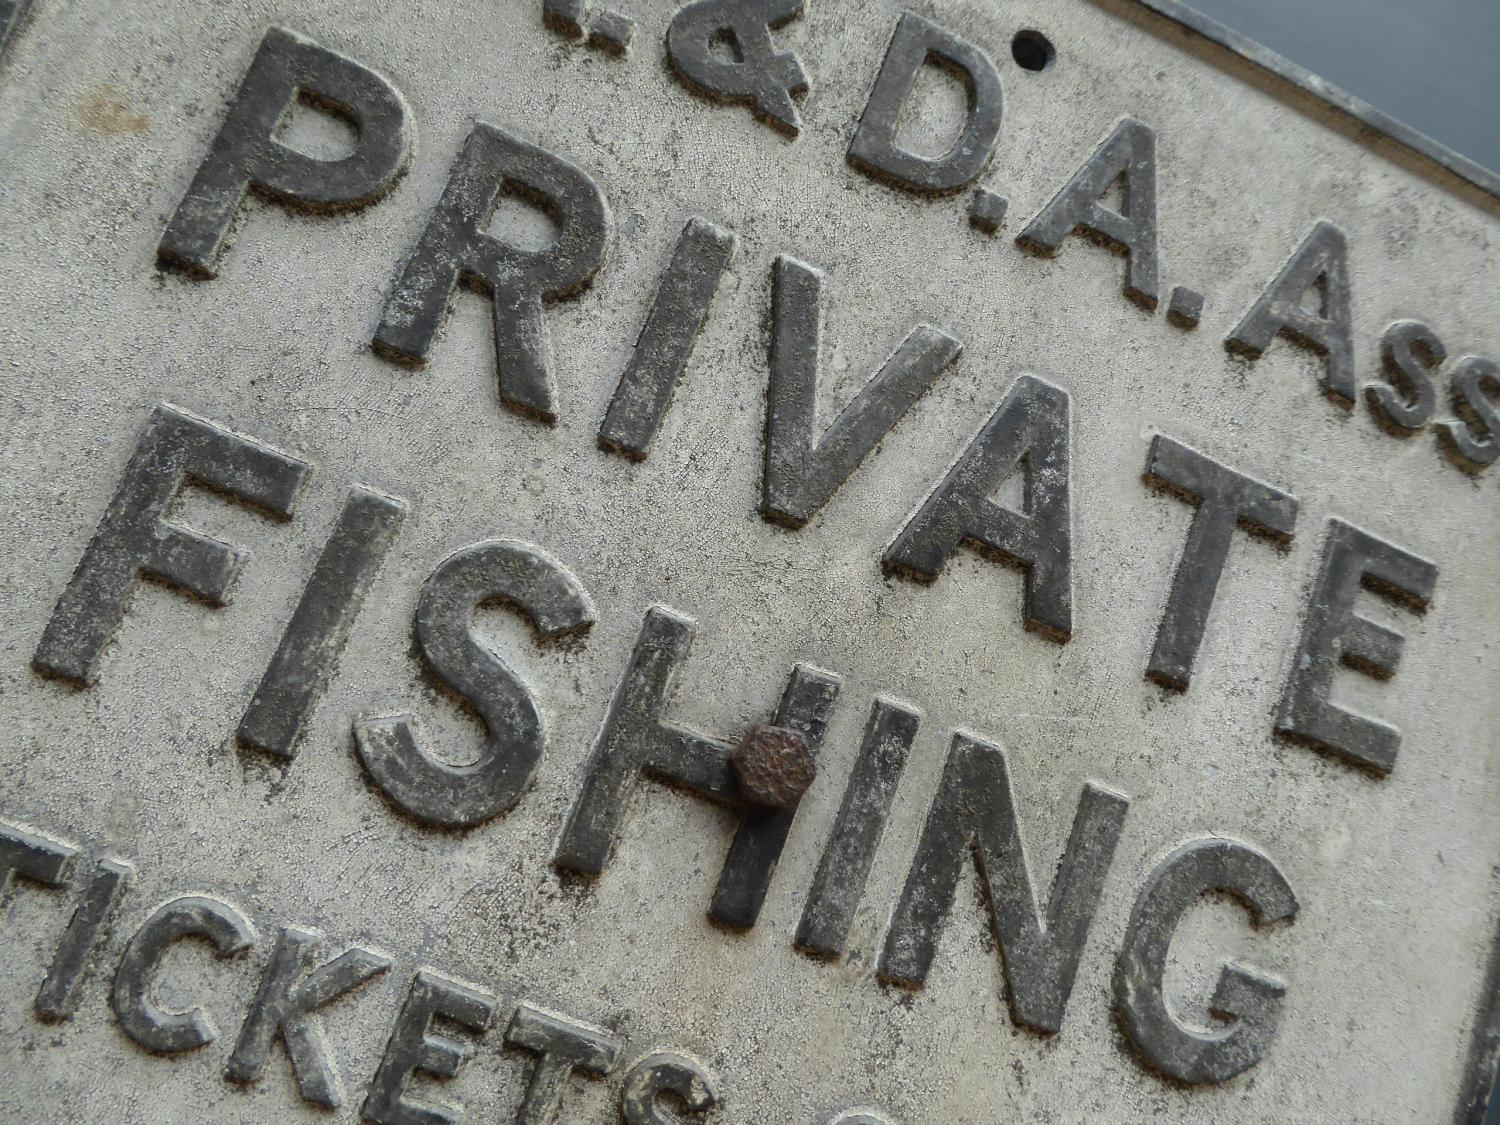 'Private Fishing'